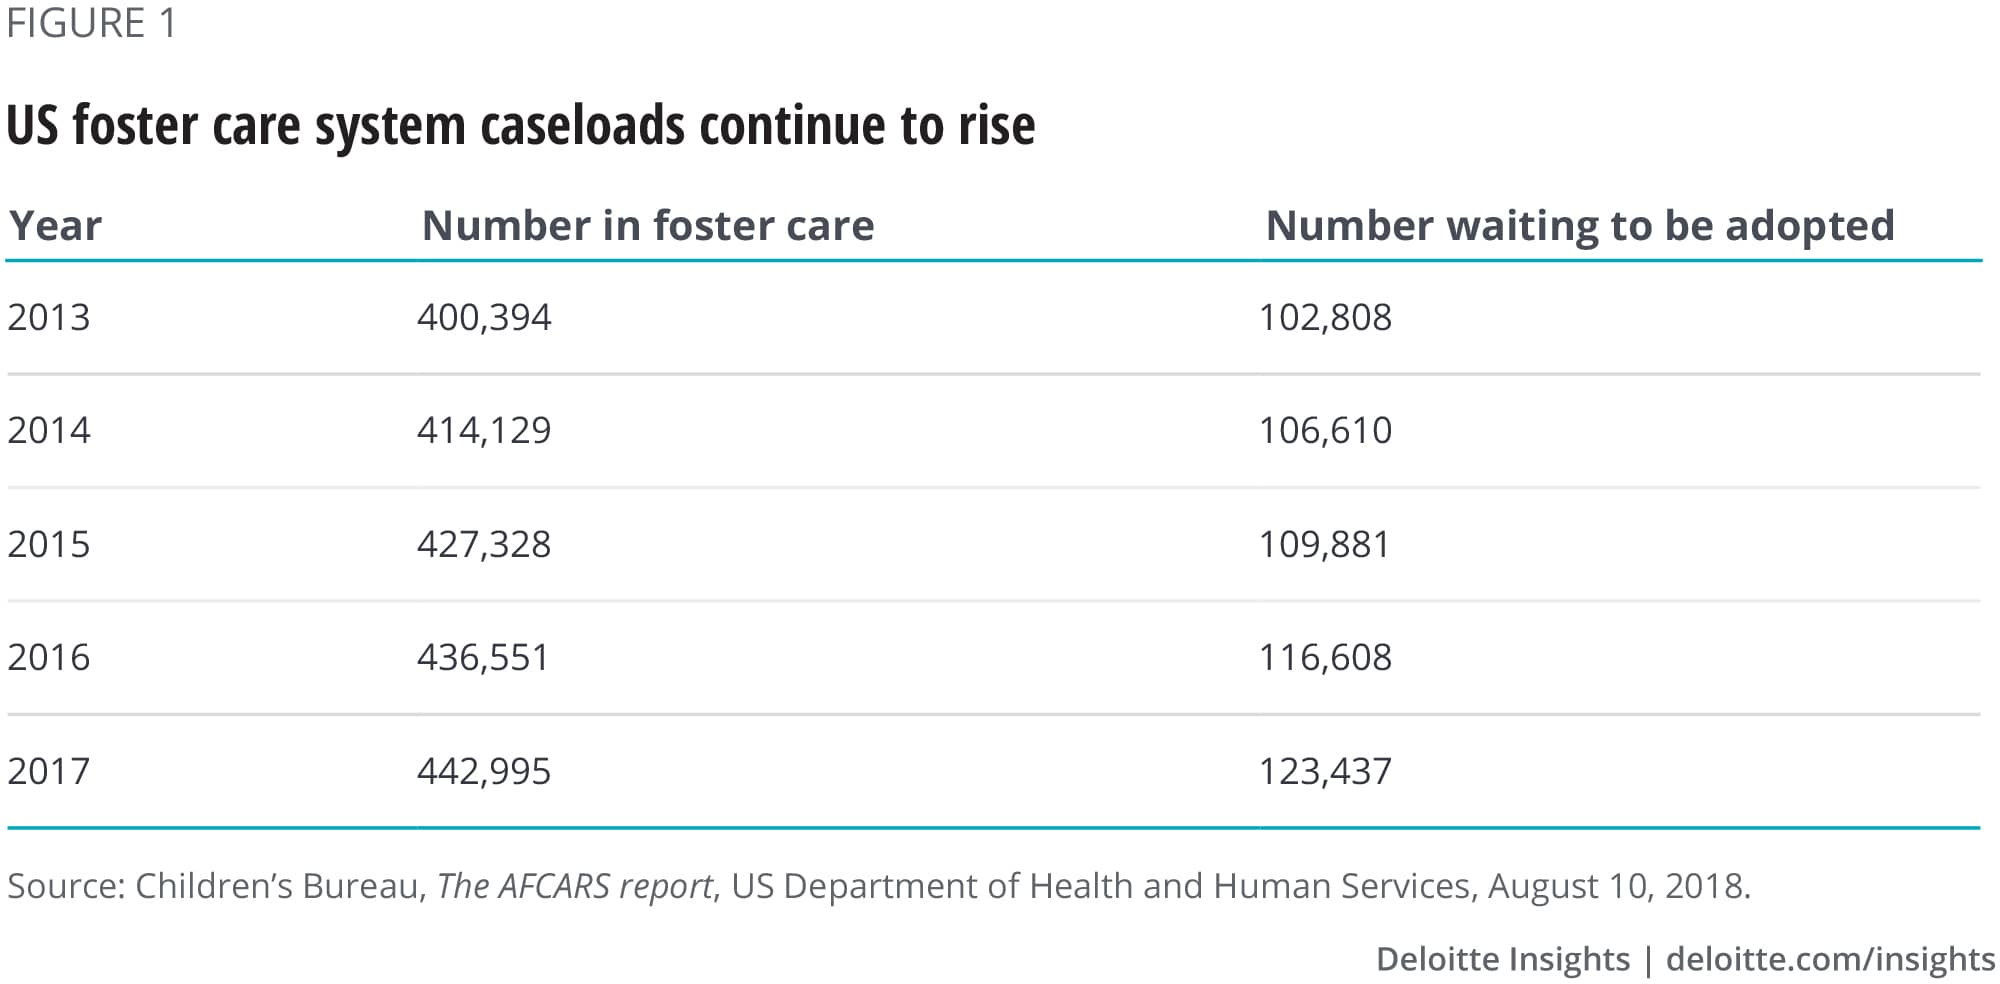 US foster care system caseloads continue to rise